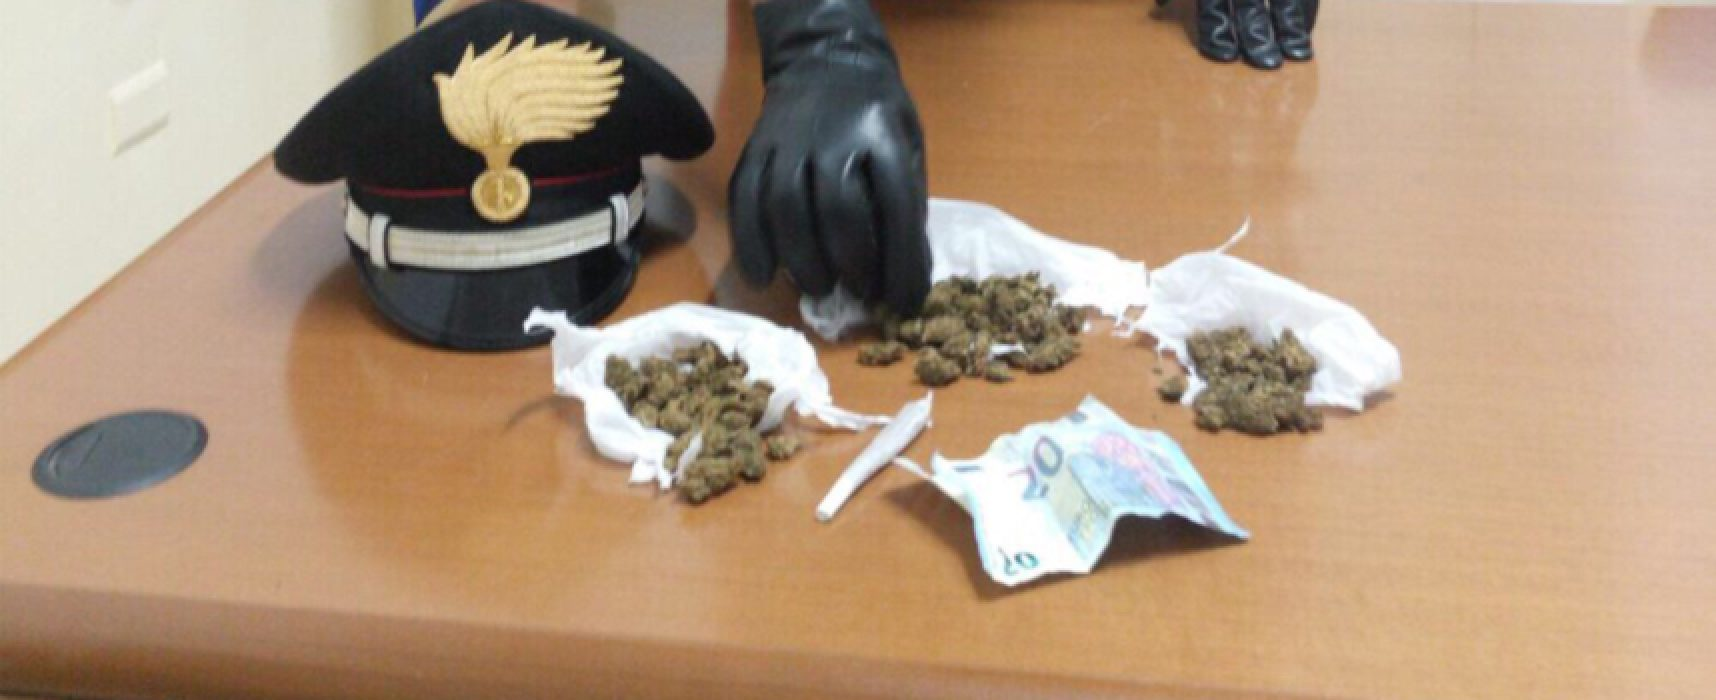 Droga: pusher 35enne arrestato in via Imbriani